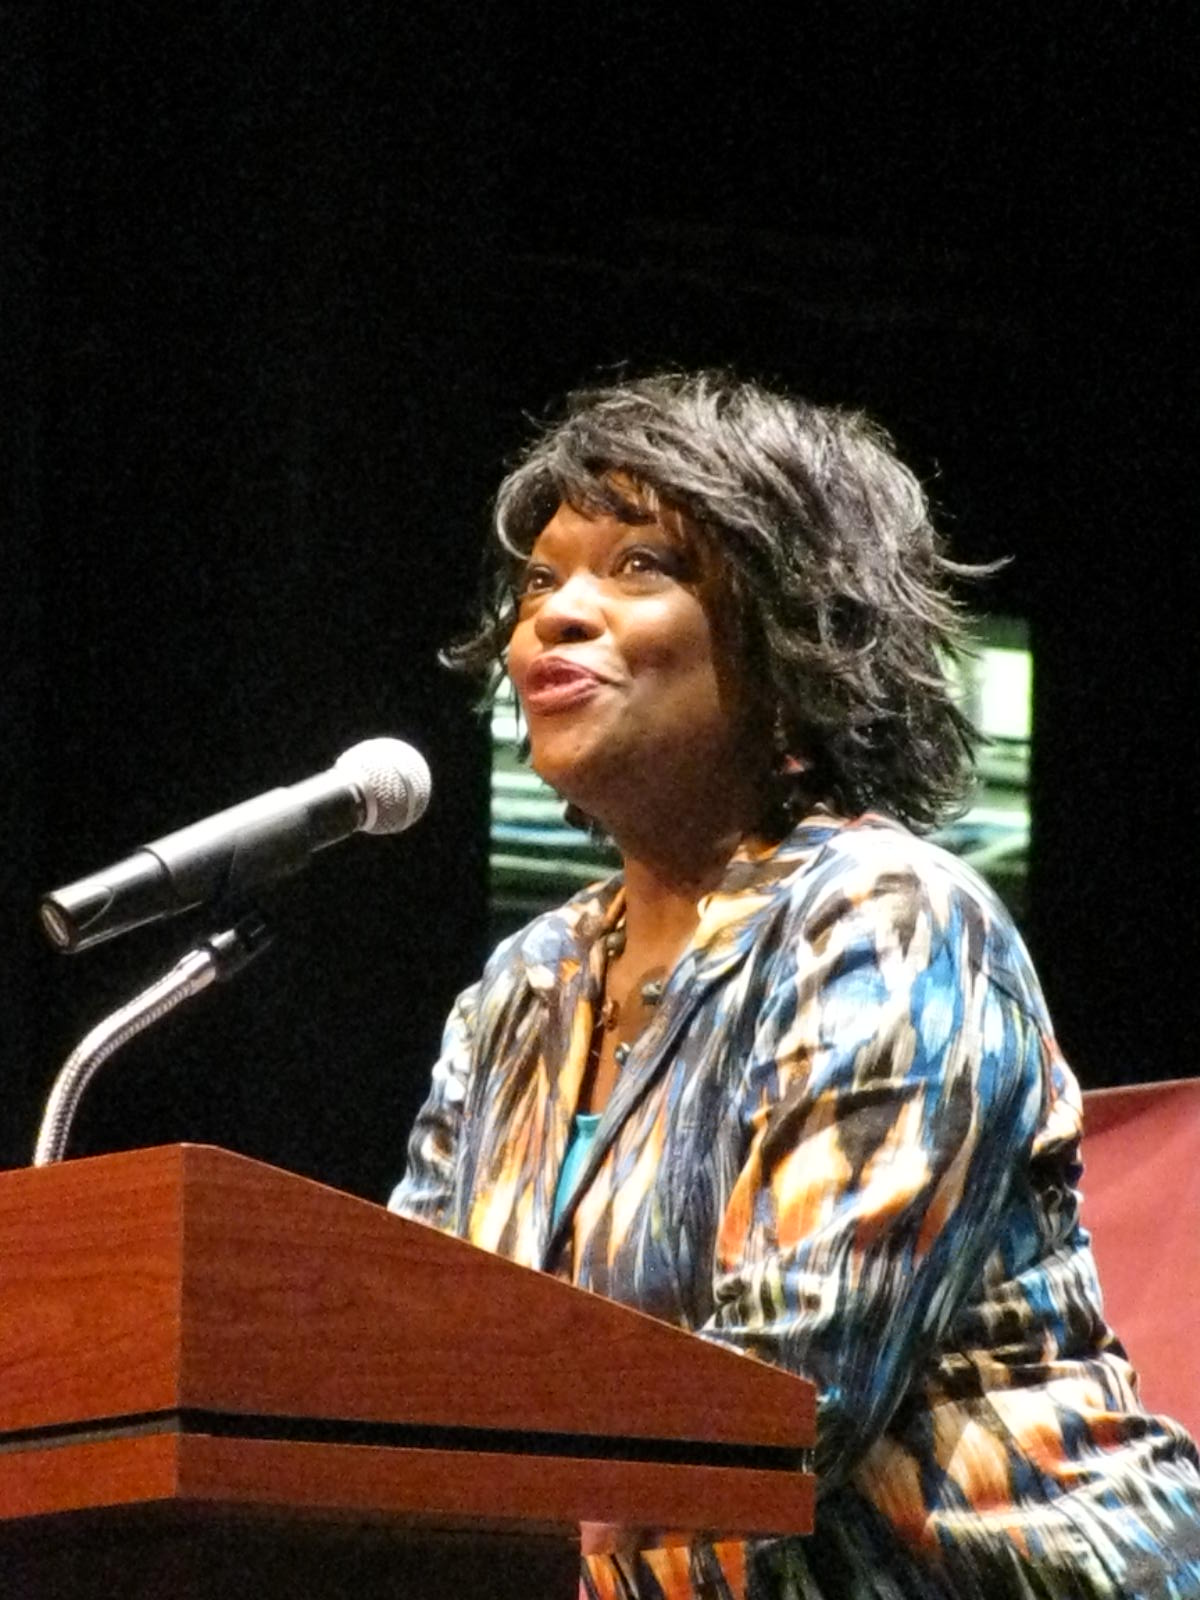 daystar by rita dove essay Analysis of rita dove's, daystar daystar by rita dove is an expressive poem, which centers on the main character, a young mother and wife, who internally struggles with her burdensome, daily duties, which creates a lack of freedom in her world.